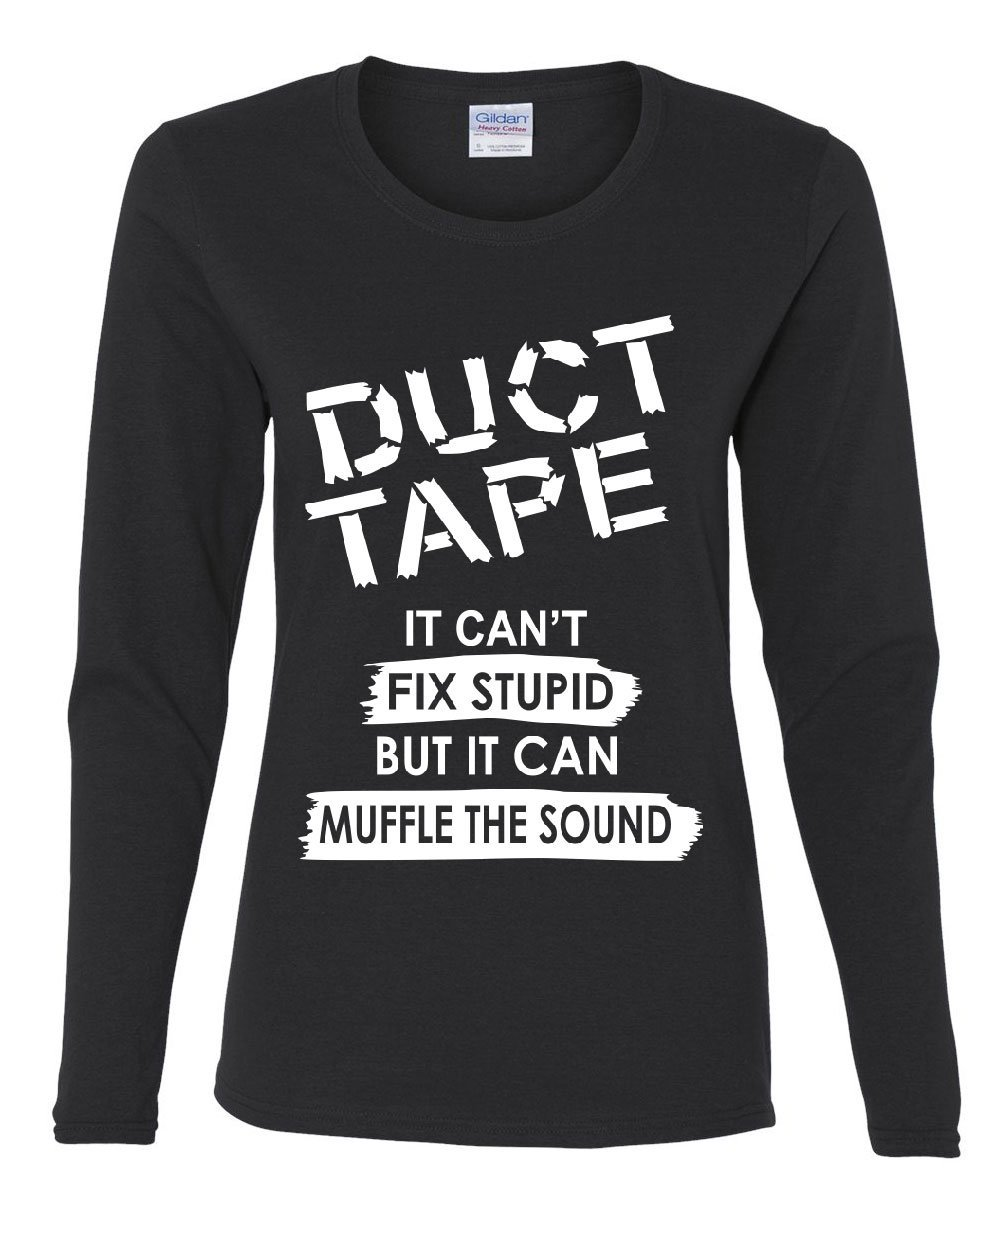 Duct Tape It Can't Fix Stupid Women's Long Sleeve Tee Offensive Humor Sarcastic Black S